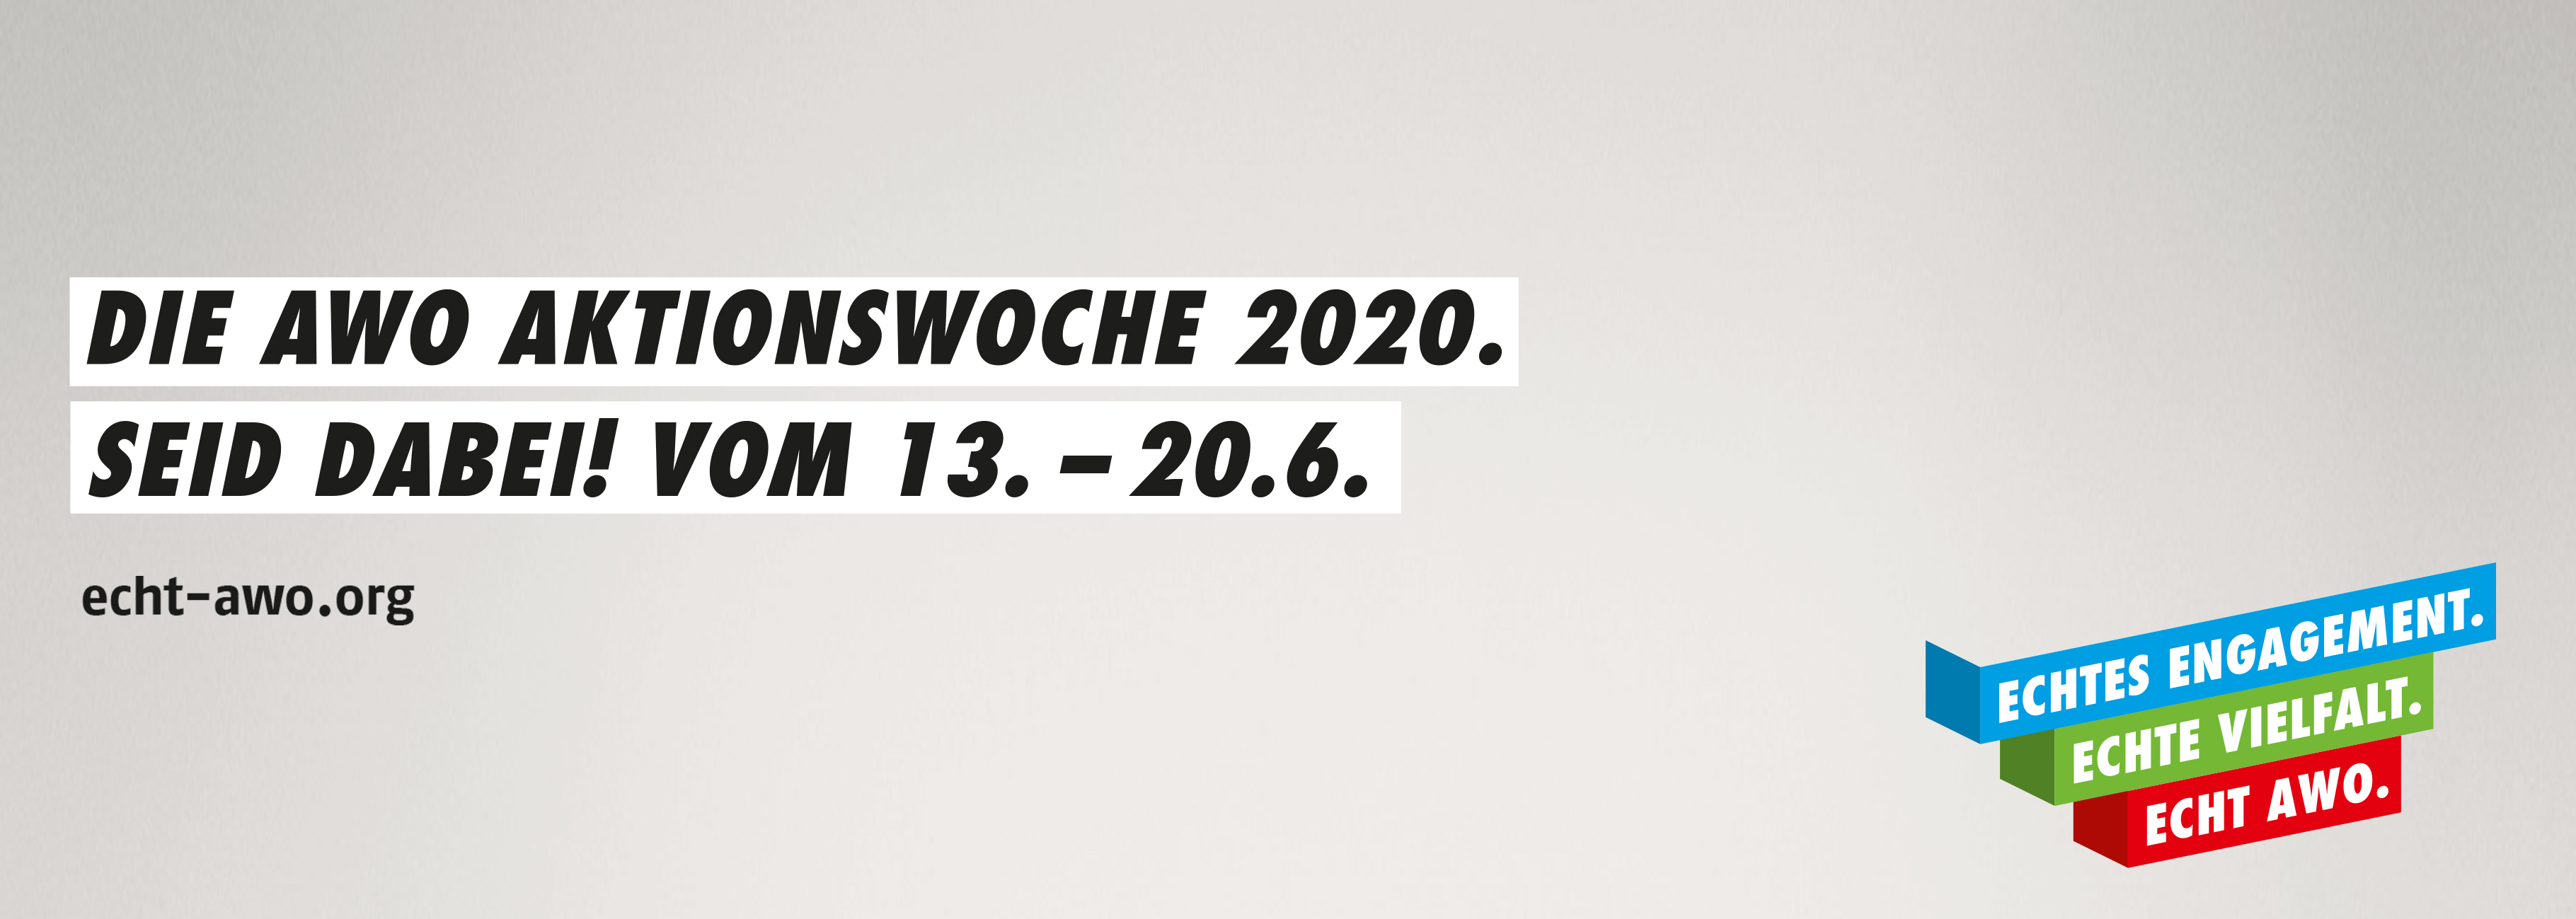 Aktionswoche 2020